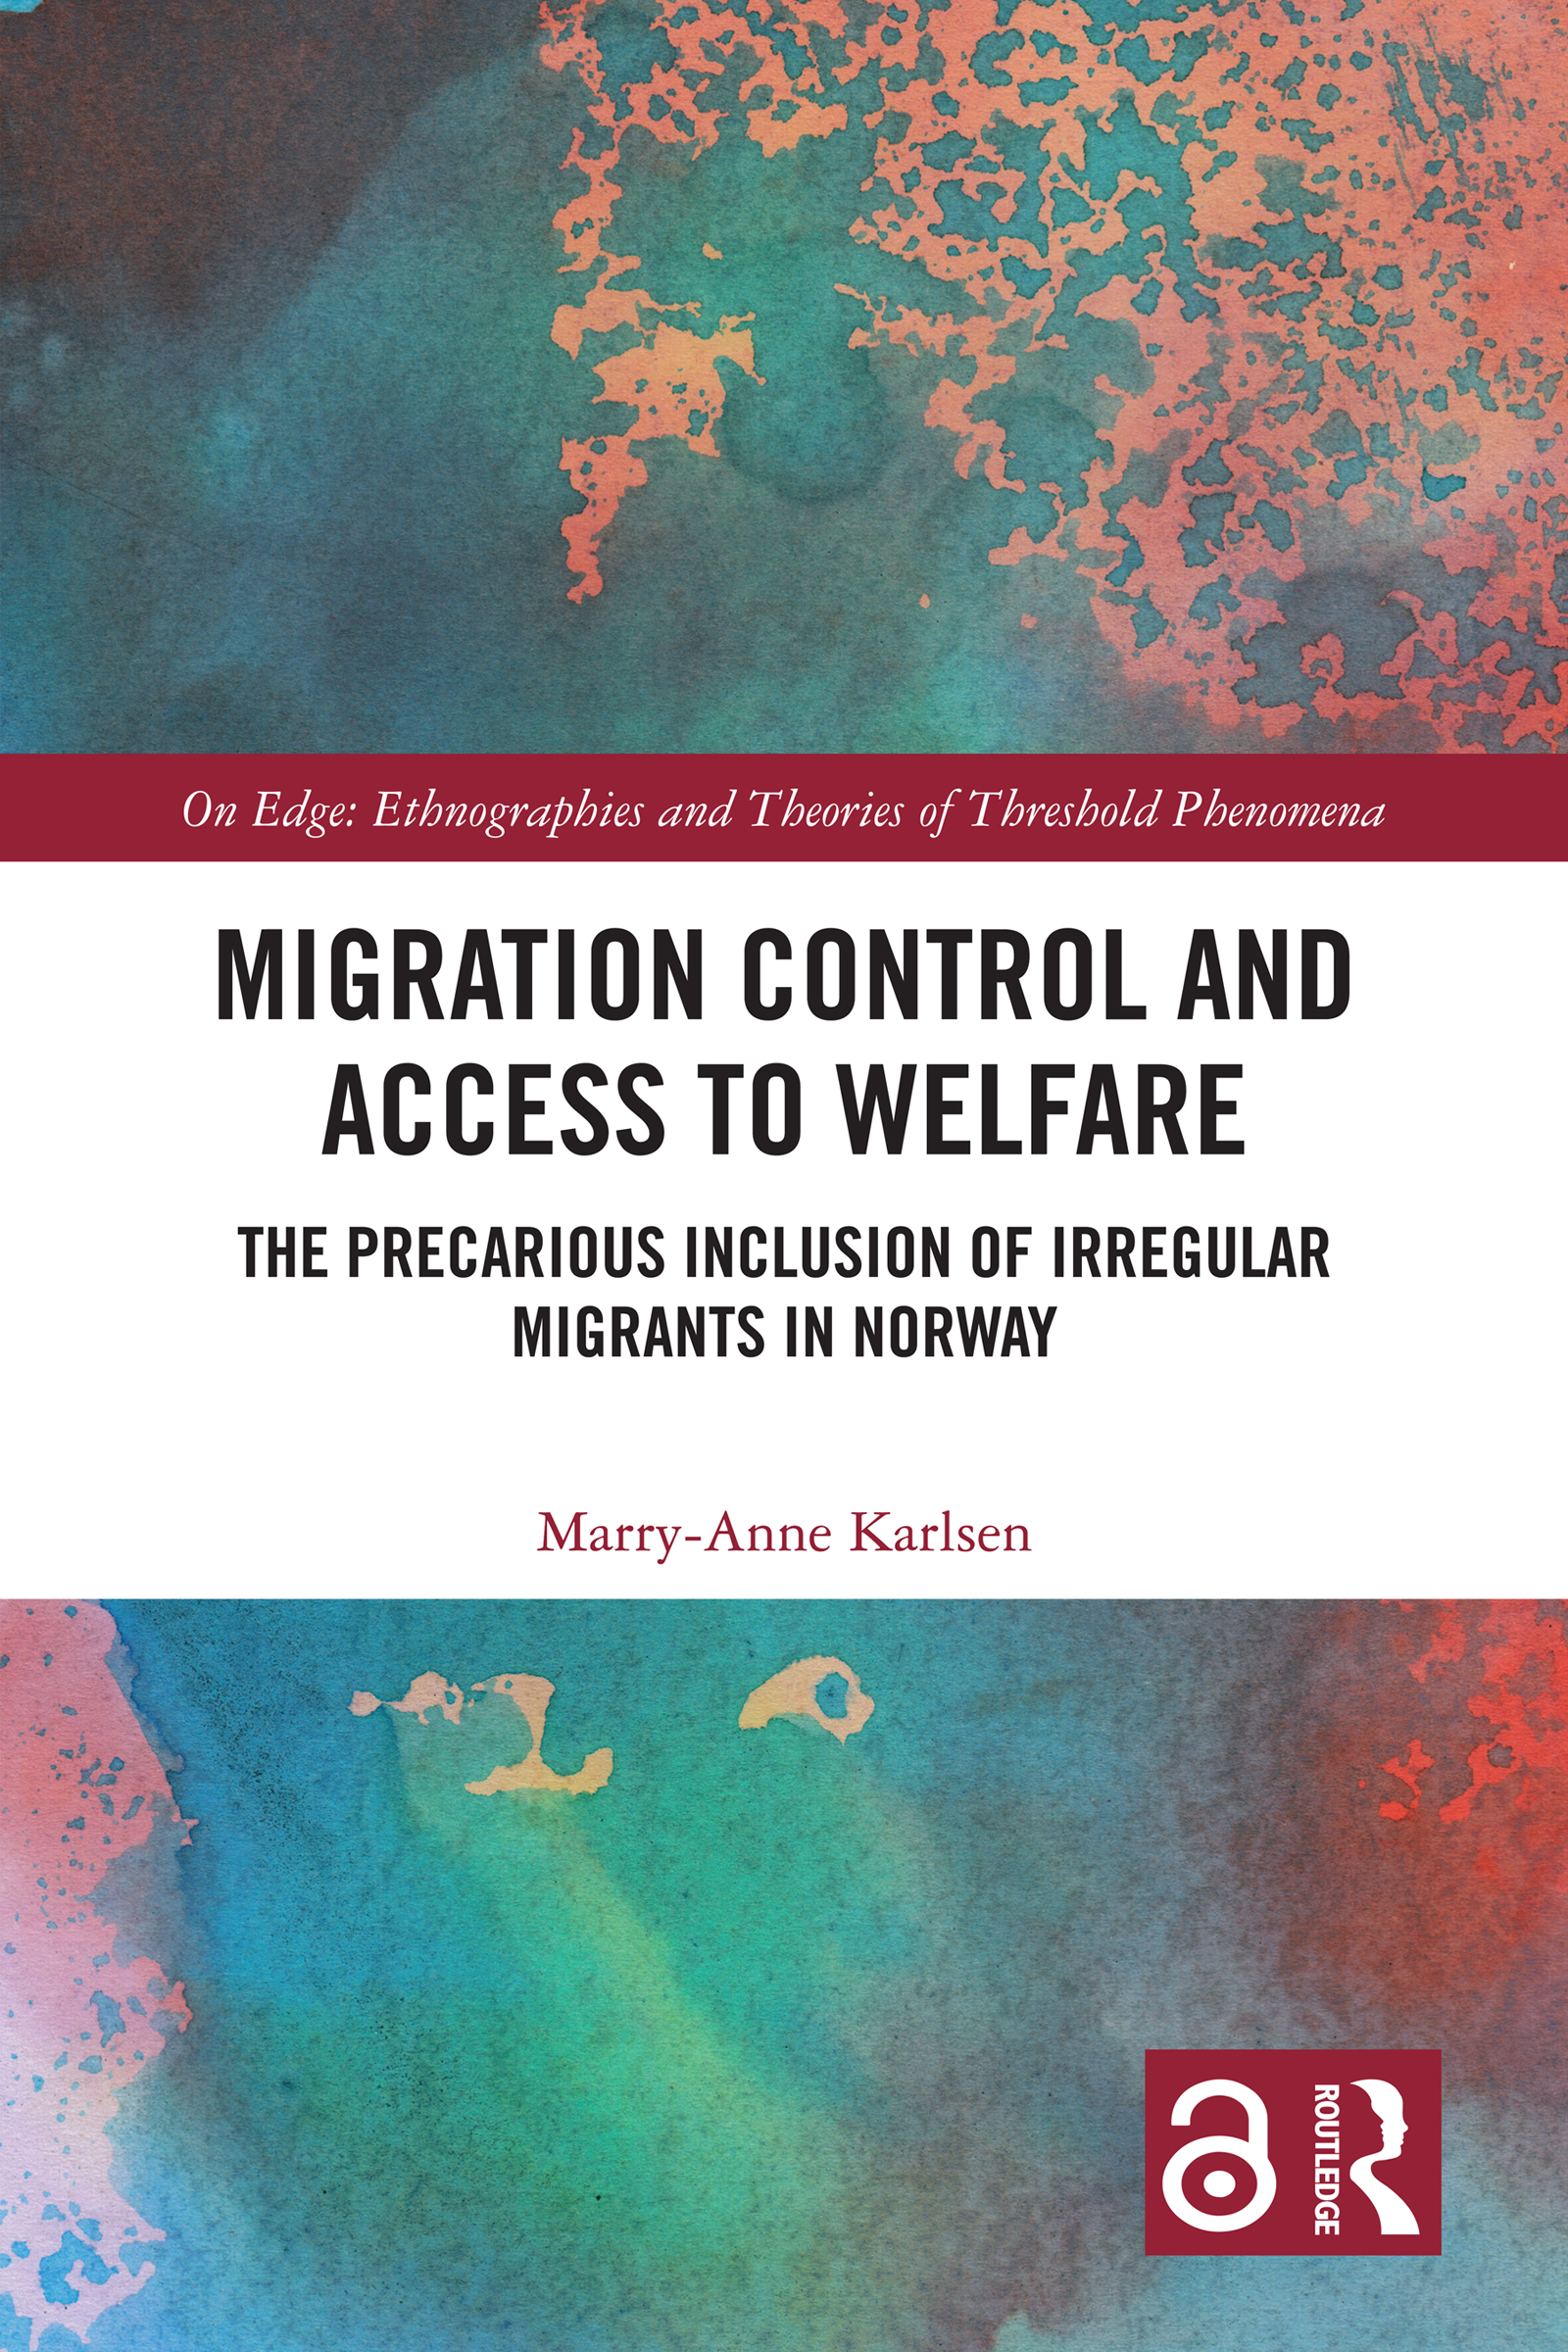 Migration Control and Access to Welfare